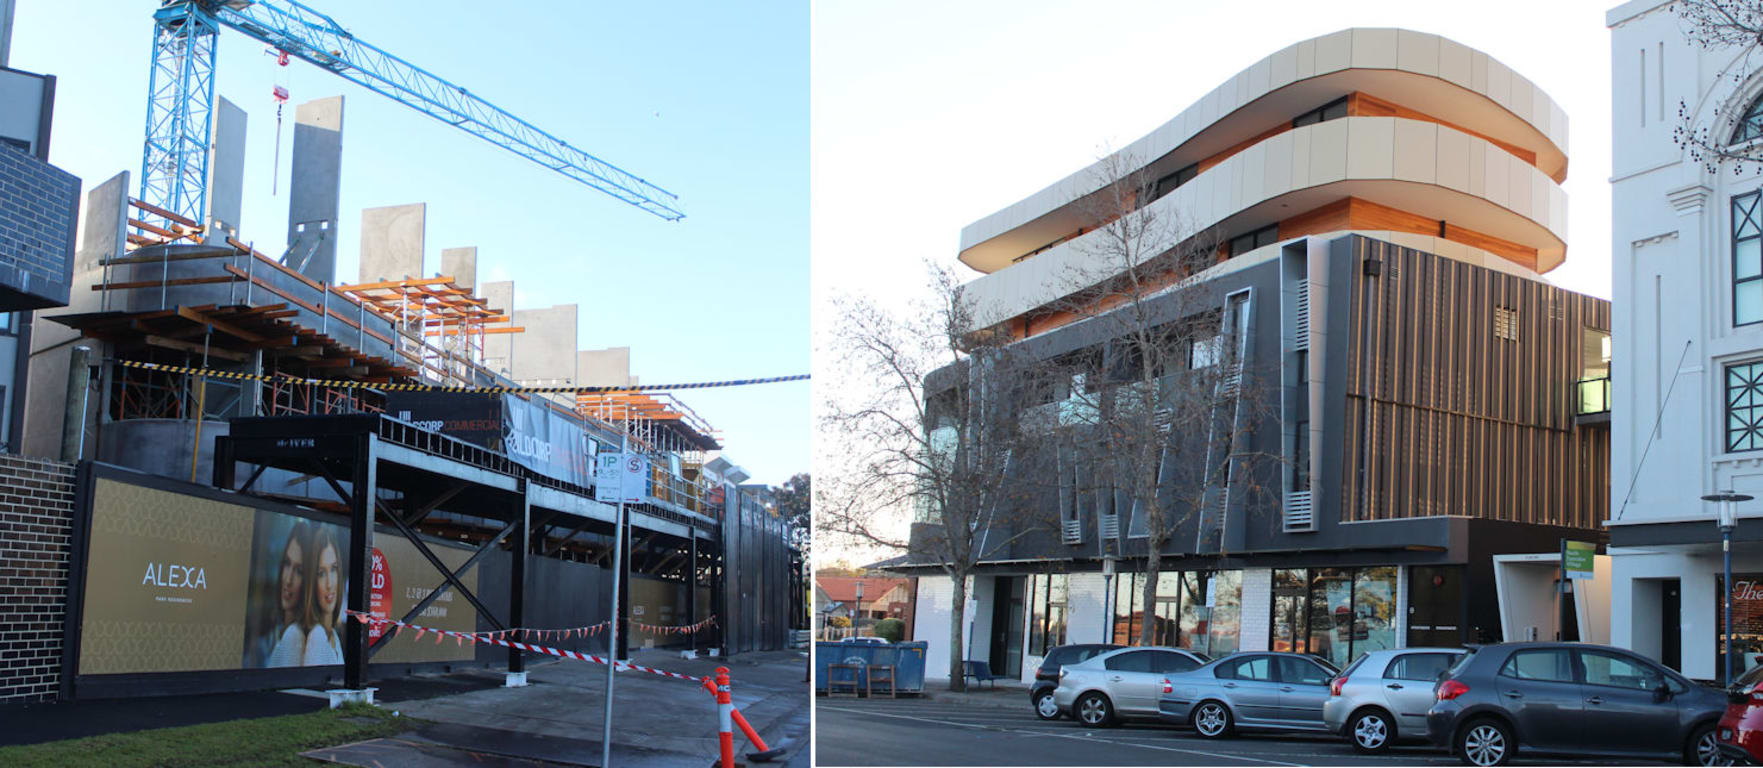 Chadstone's twin towers sharpen up